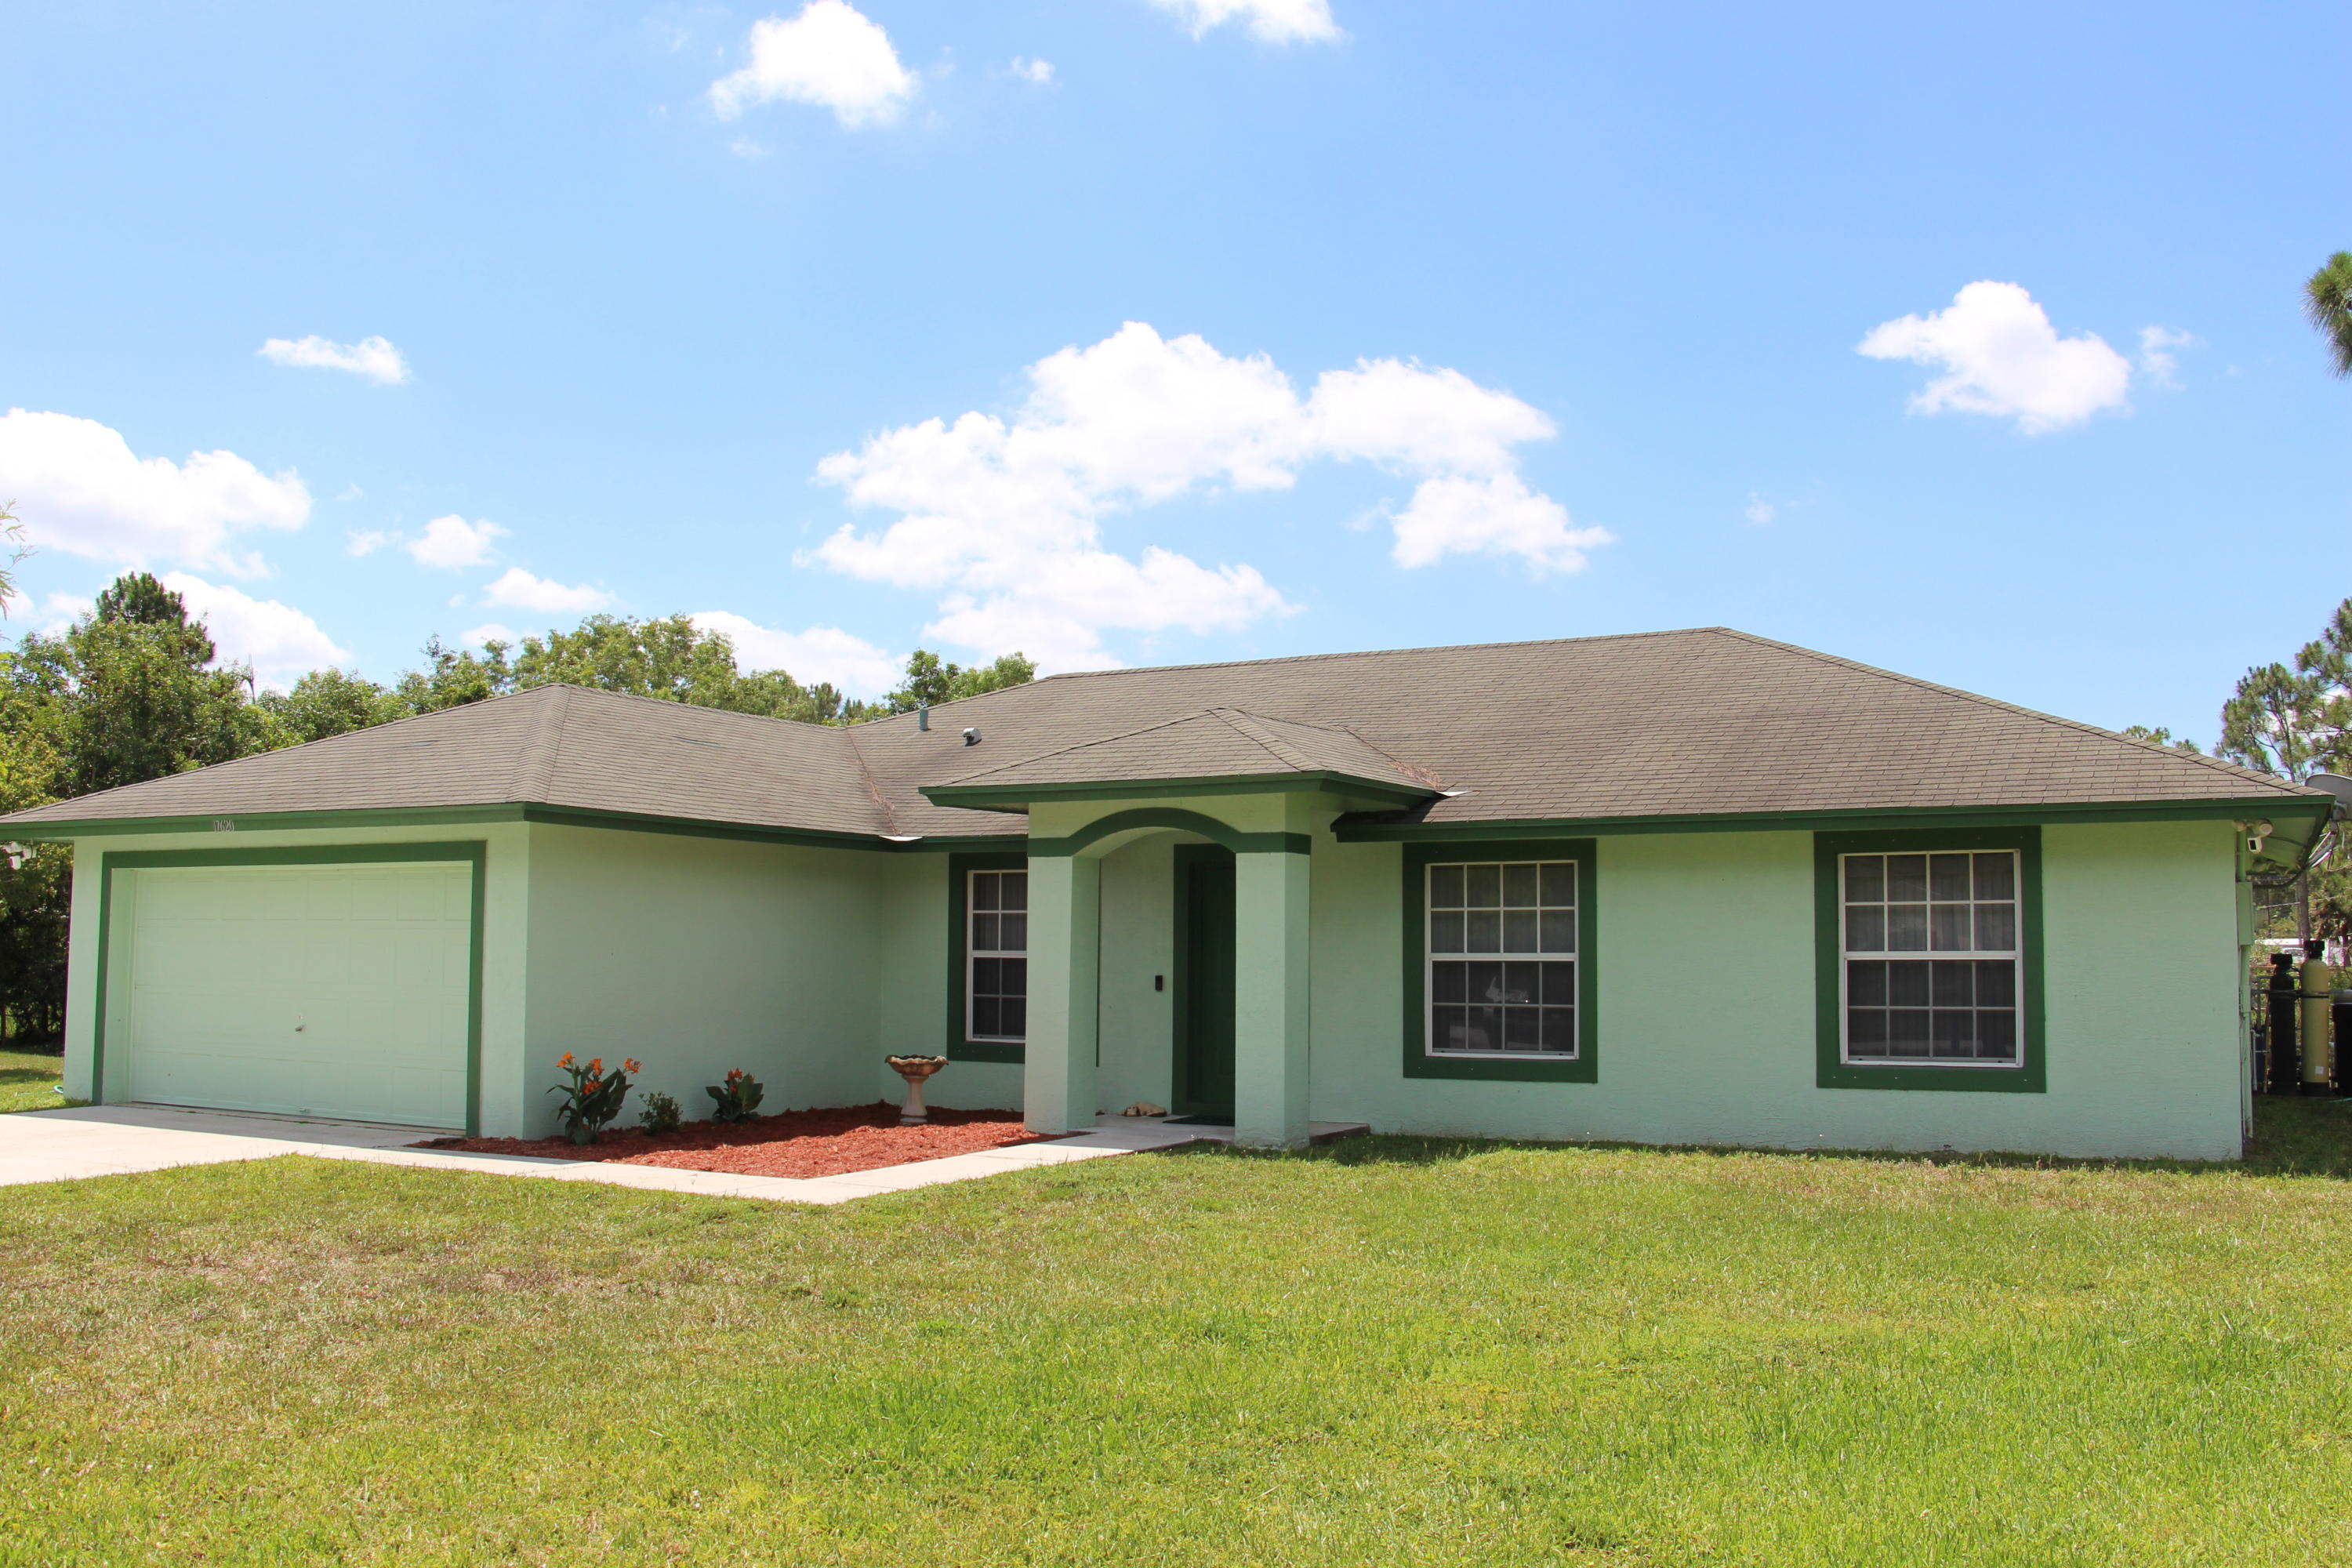 17620 43rd Road N, Loxahatchee in Palm Beach County, FL 33470 Home for Sale